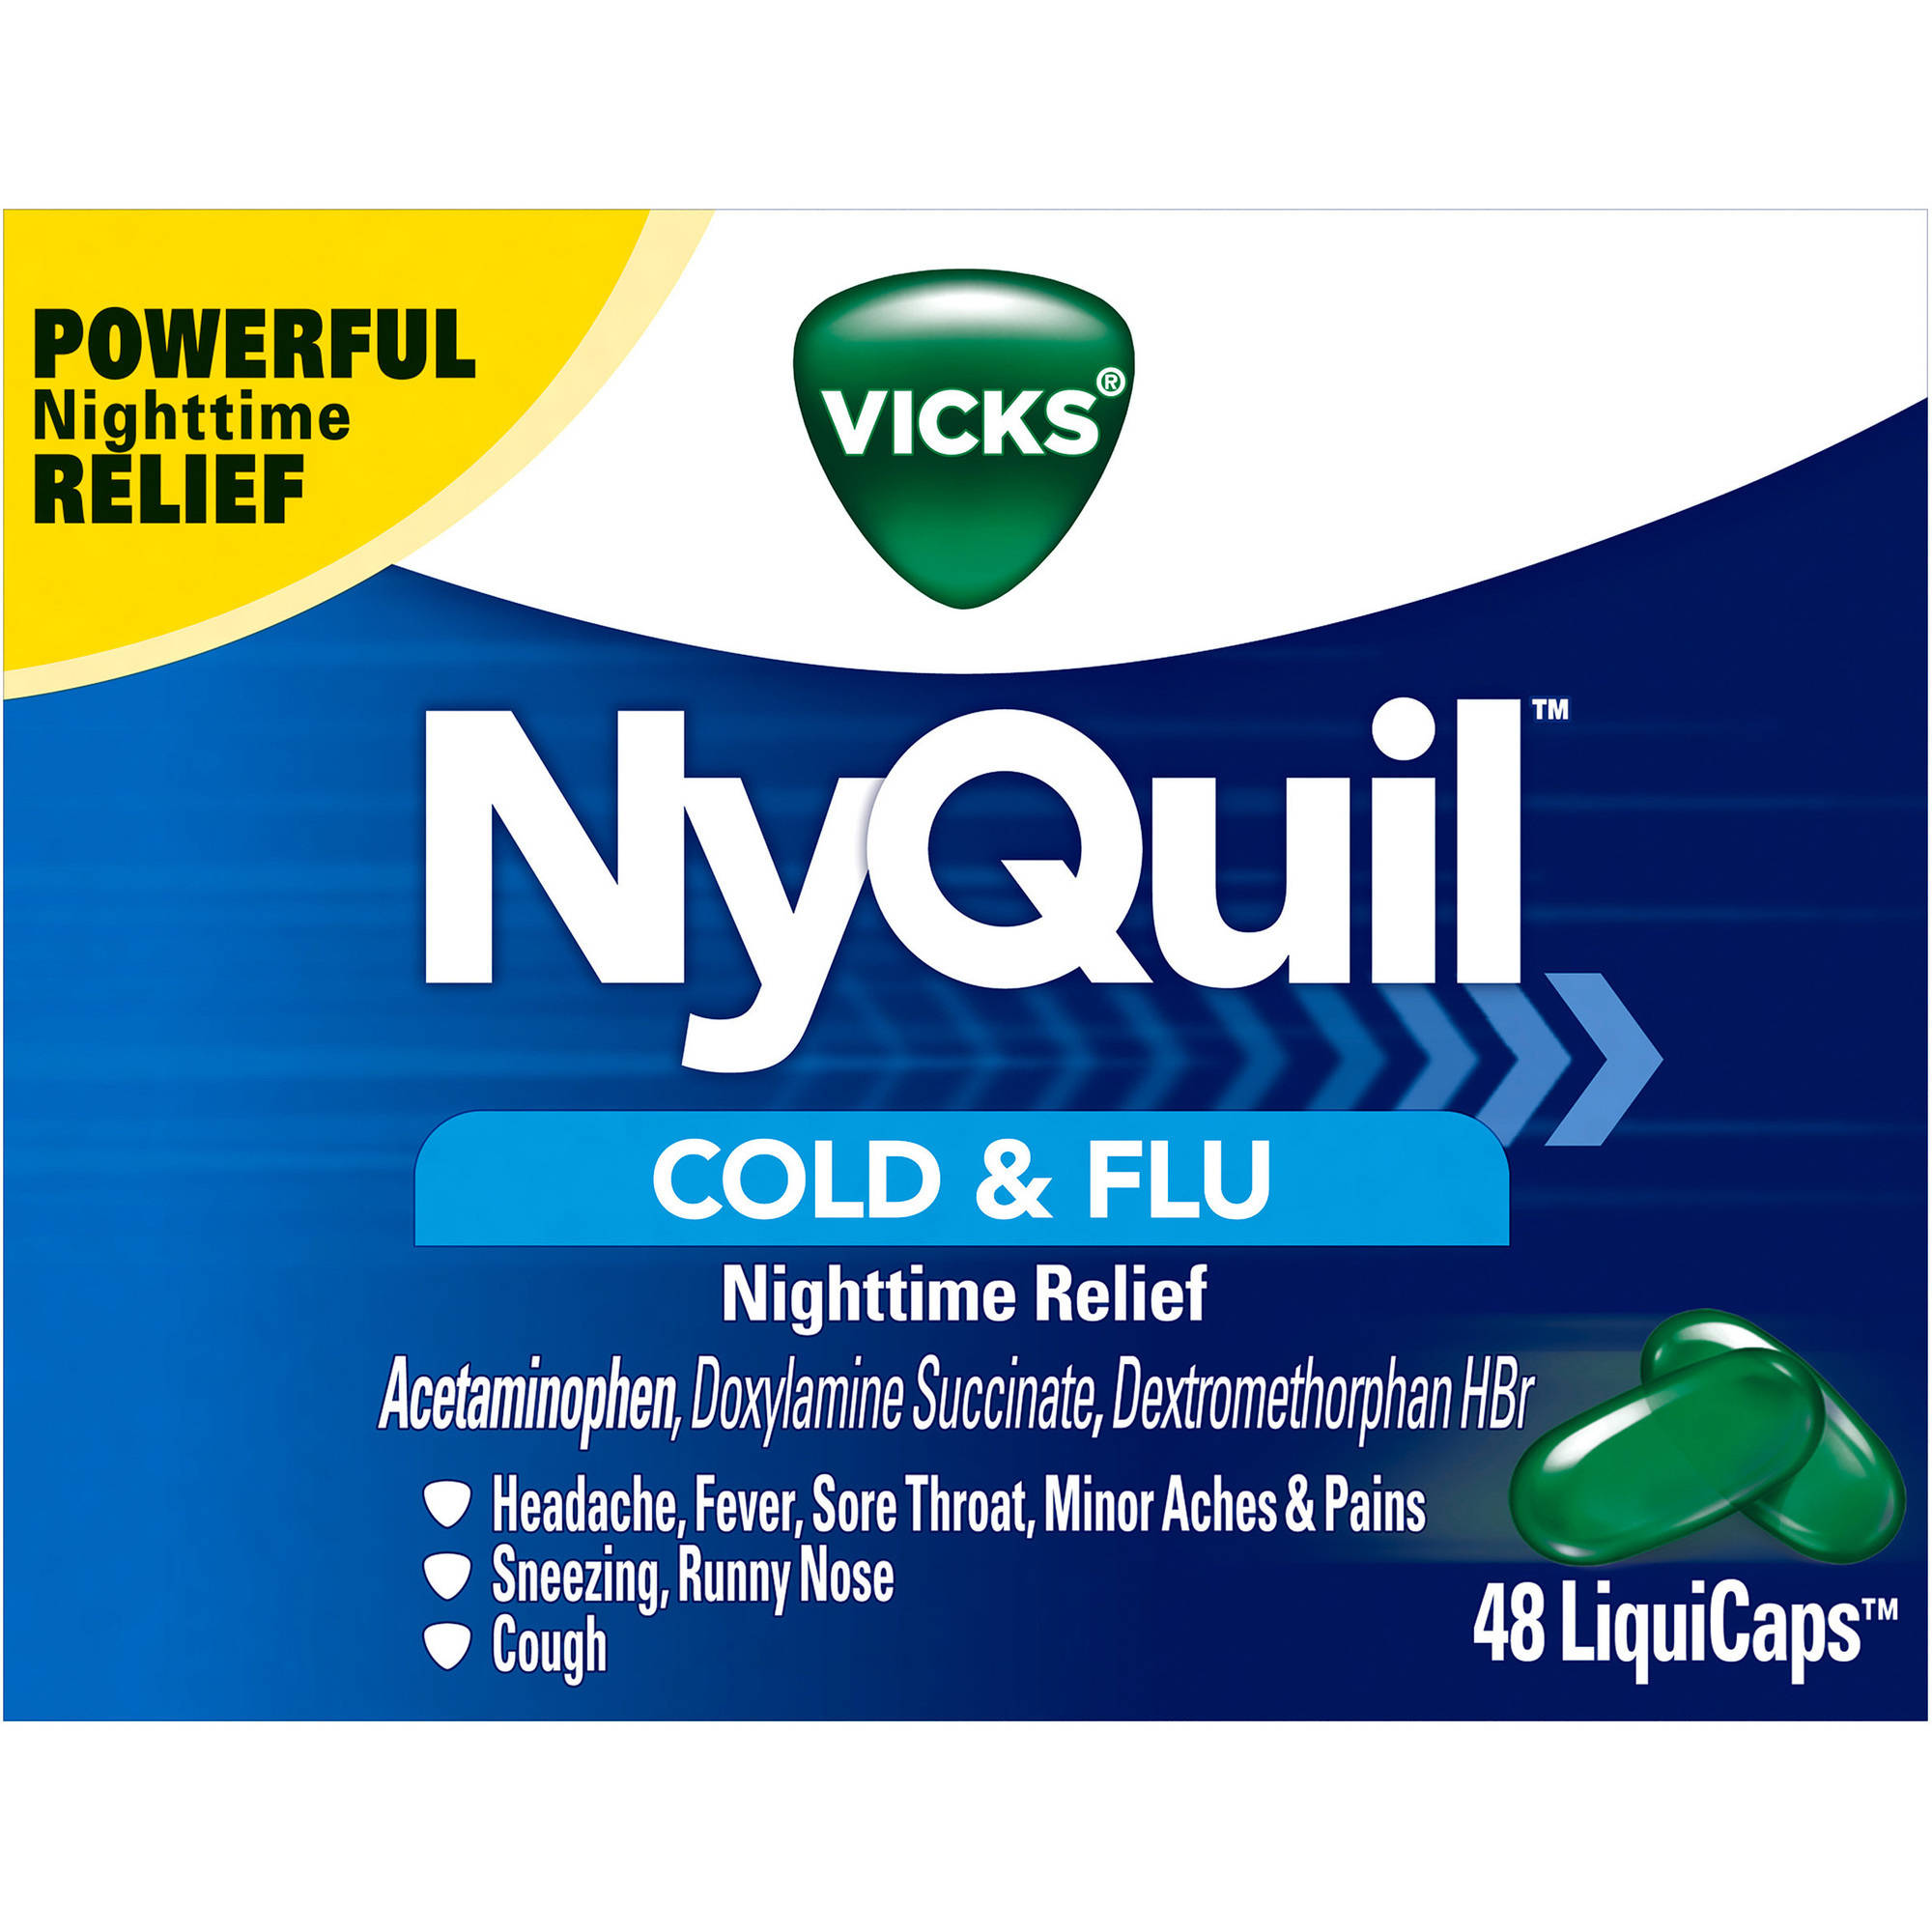 Vicks NyQuil Cold & Flu Nighttime Relief LiquiCaps, 48 count